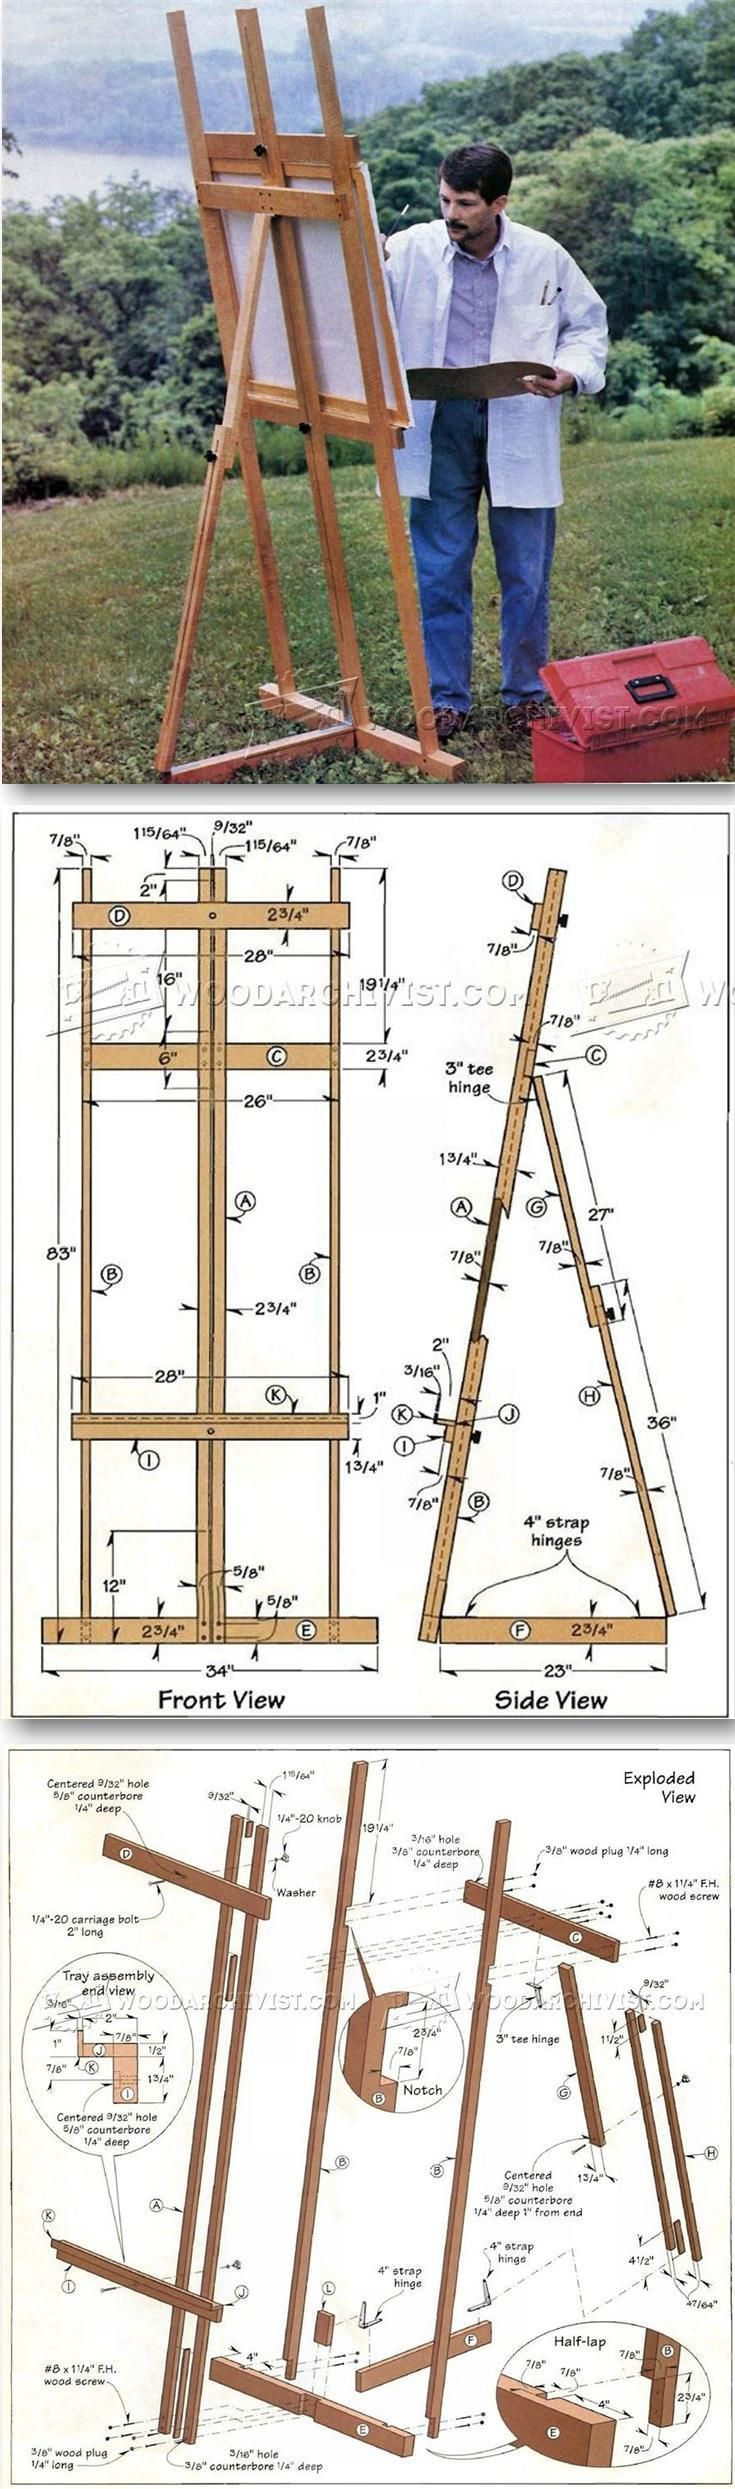 DIY Art Easel - Woodworking Plans and Projects | http://WoodArchivist.com